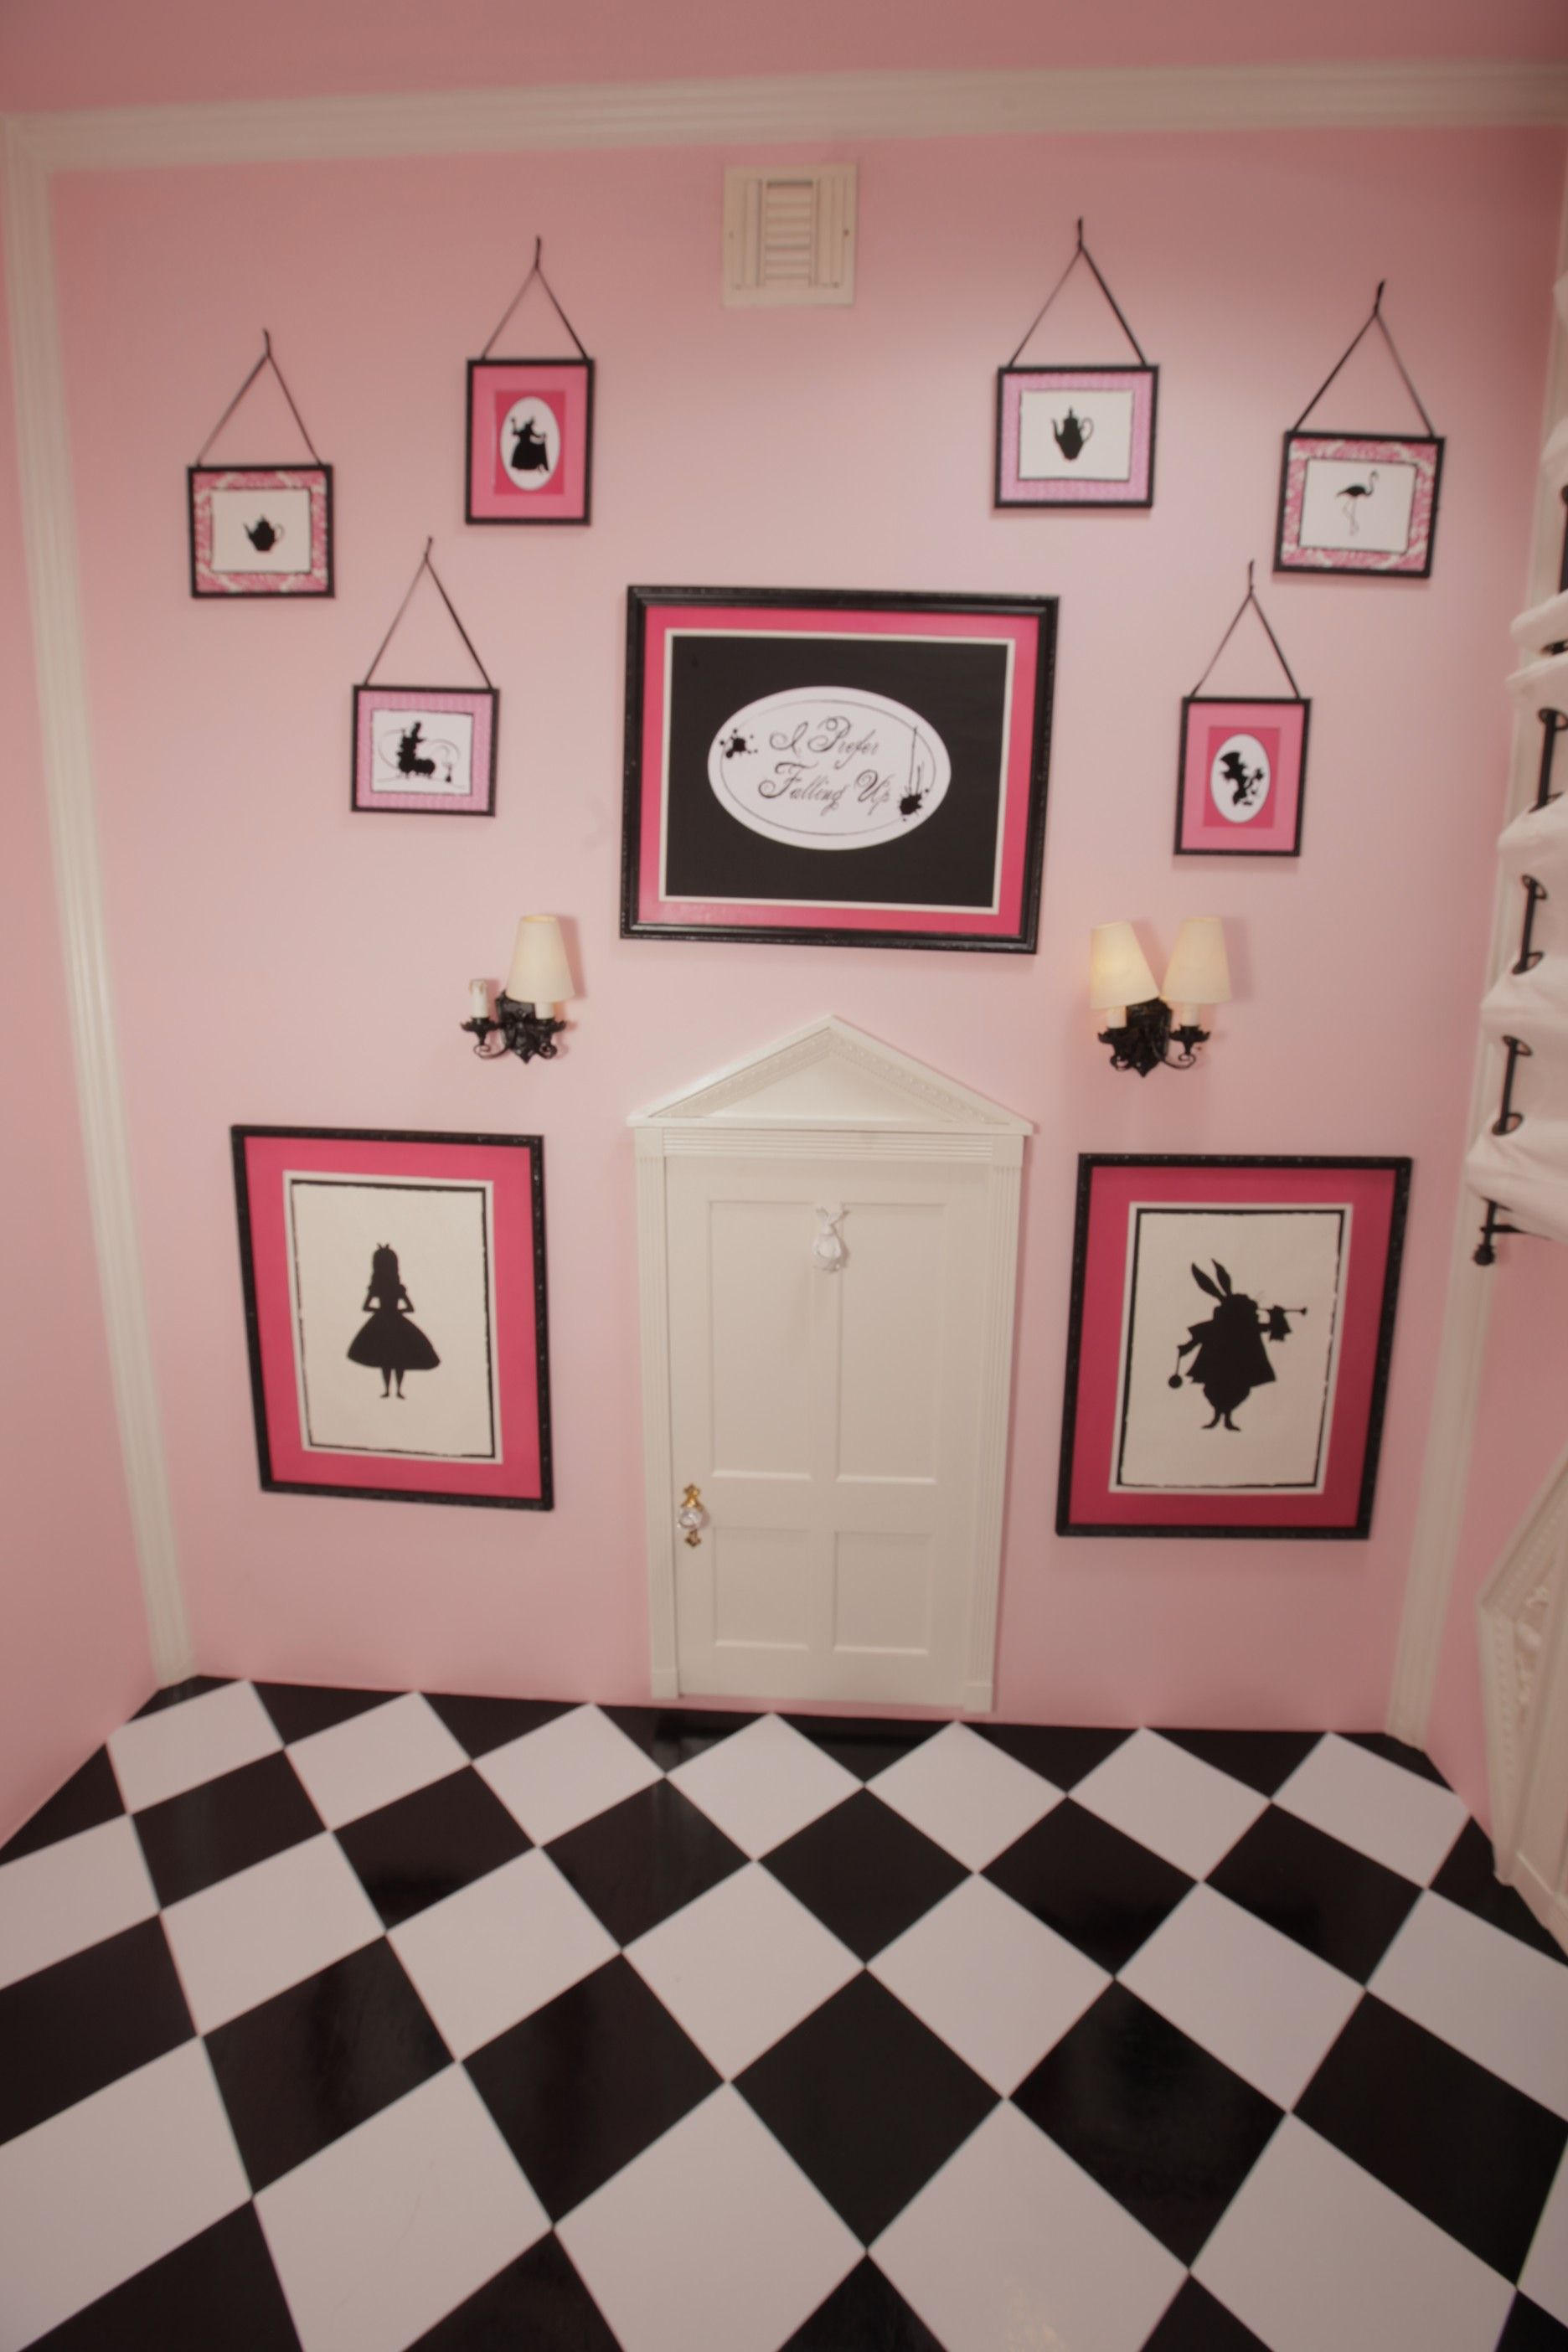 Marvelous This Is Our Pink Alice In Wonderland Room. It Made For A Very Unique Nursary